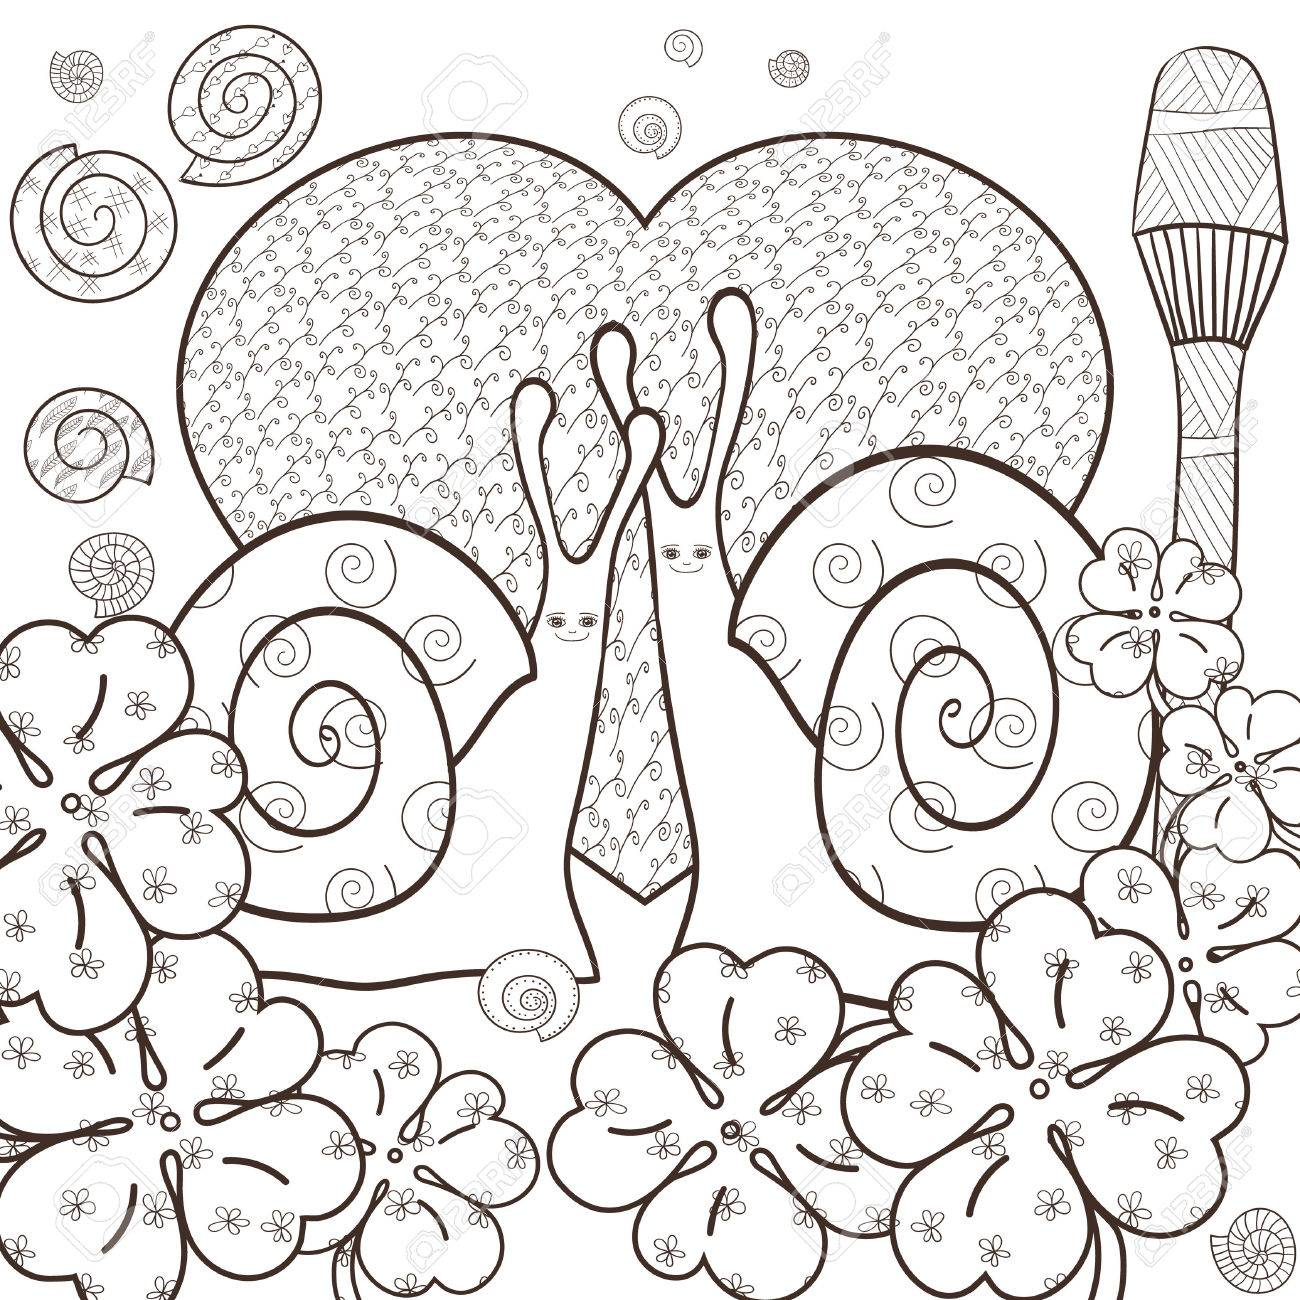 Whimsical designs coloring book - Cute Snail Adult Coloring Book Page Snails In Whimsical Forest With Big Heart And Magic